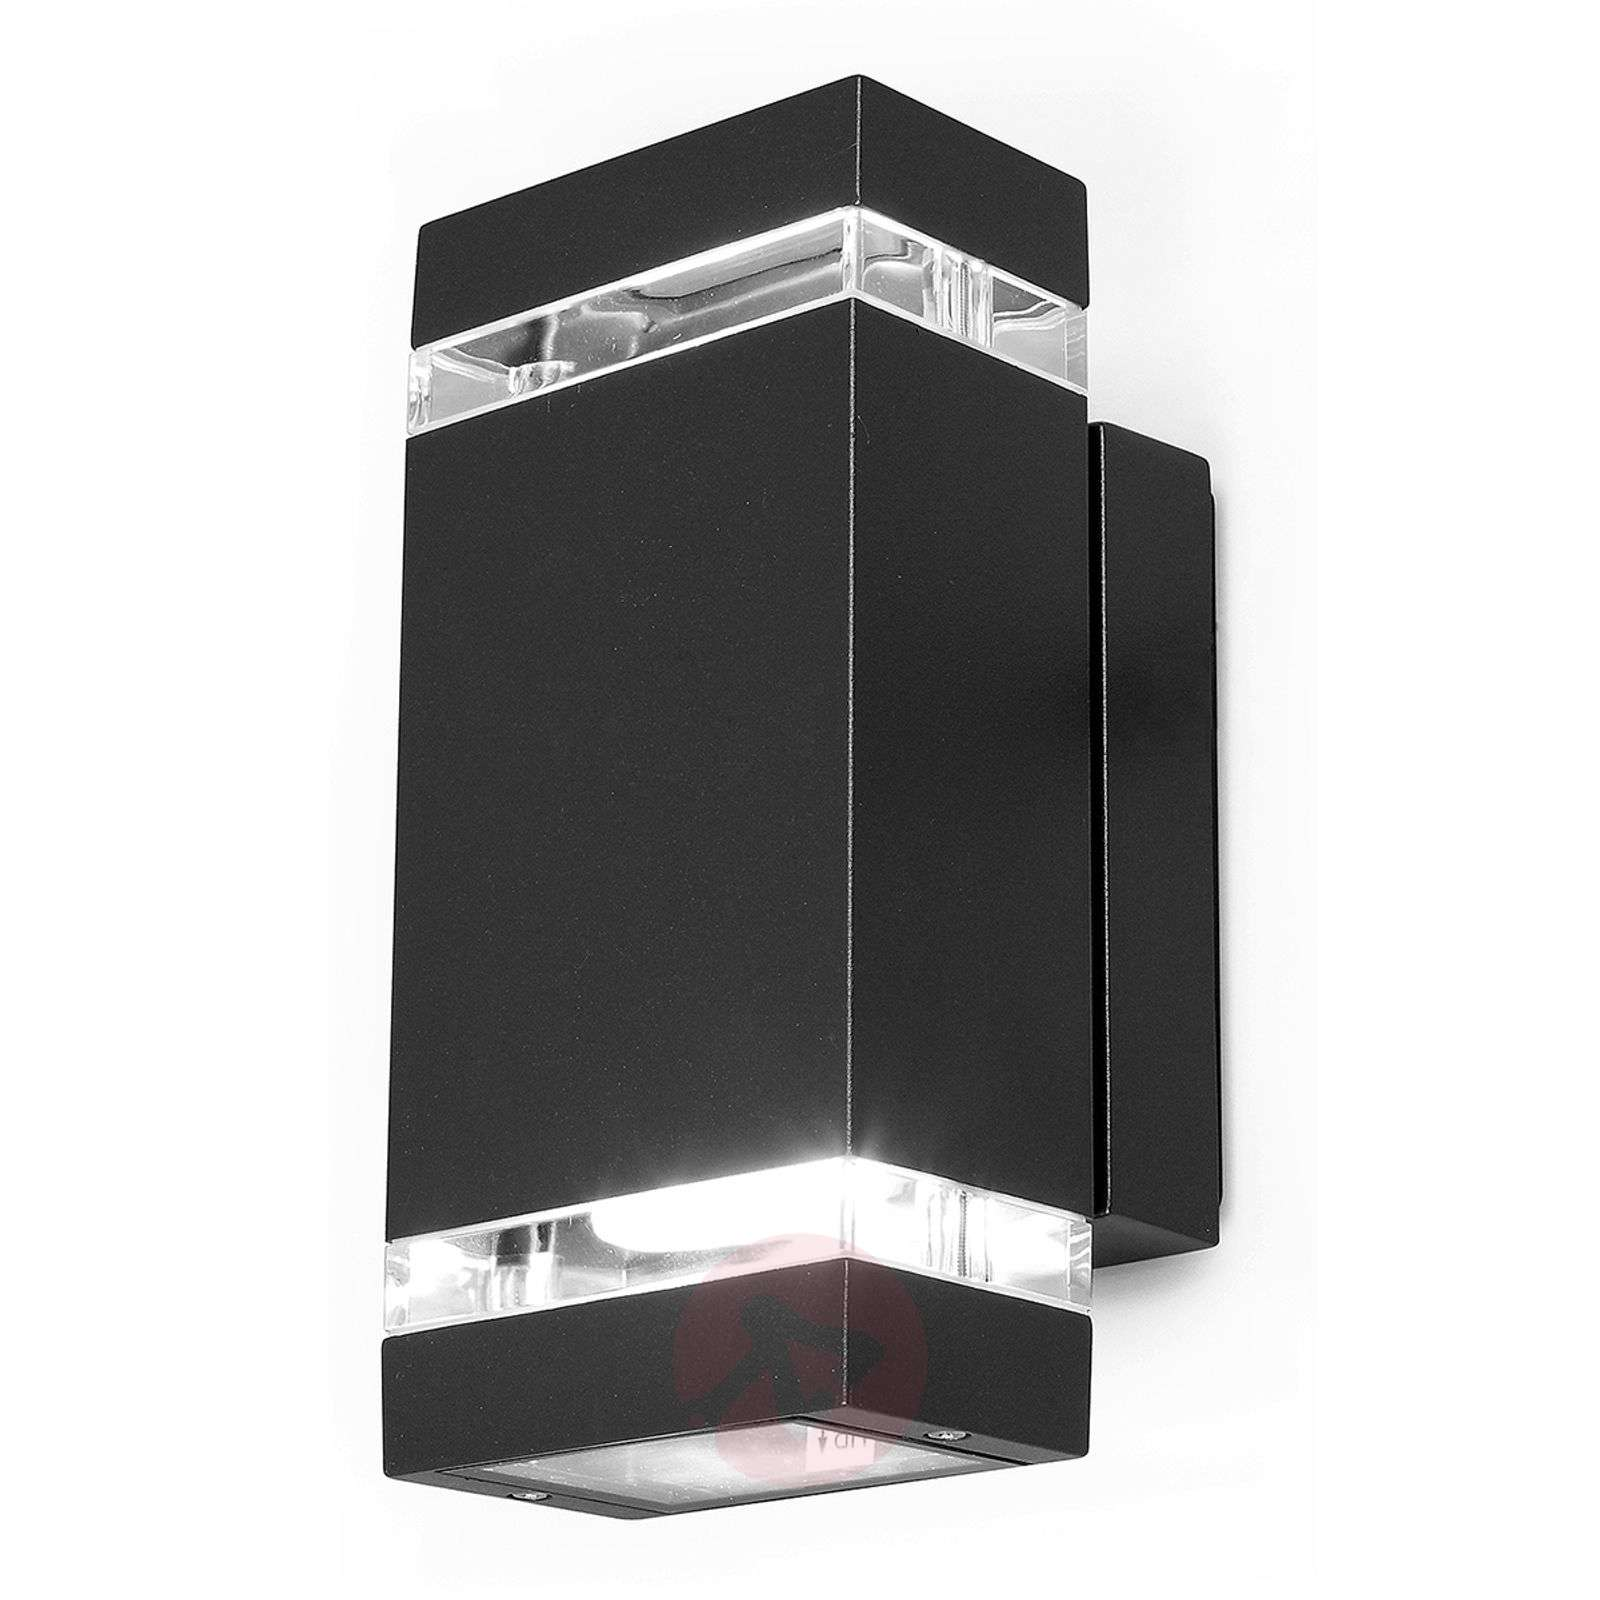 Rectangular-shaped FOCUS LED exterior wall light | Lights.co.uk